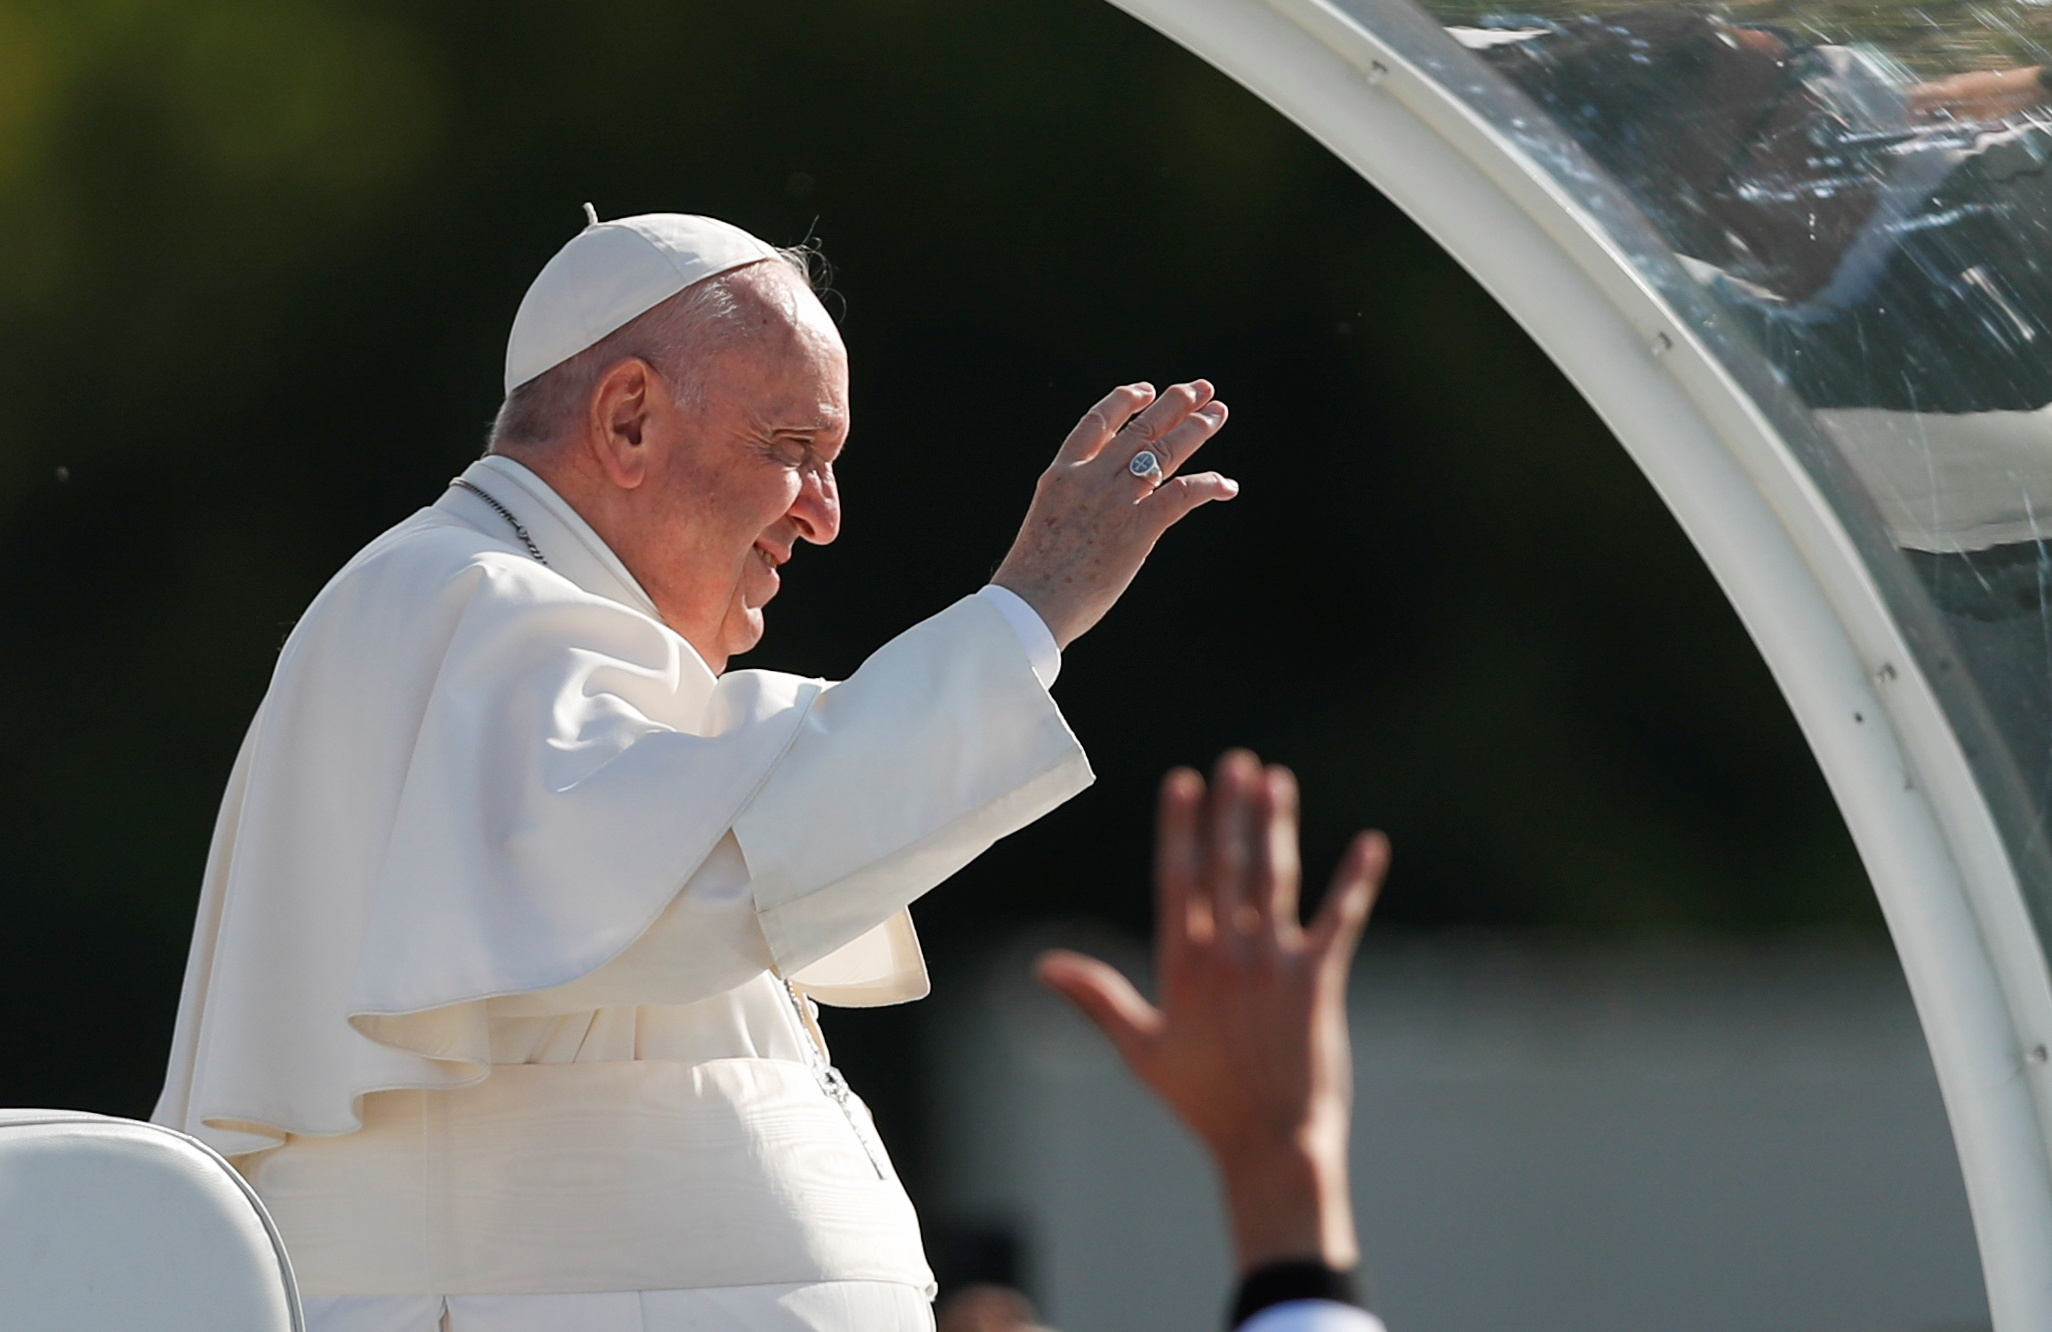 Pope Francis arrives for the Holy Mass at the Basilica of Our Lady of Sorrows in Sastin, Slovakia, September 15, 2021.  REUTERS/David Cerny